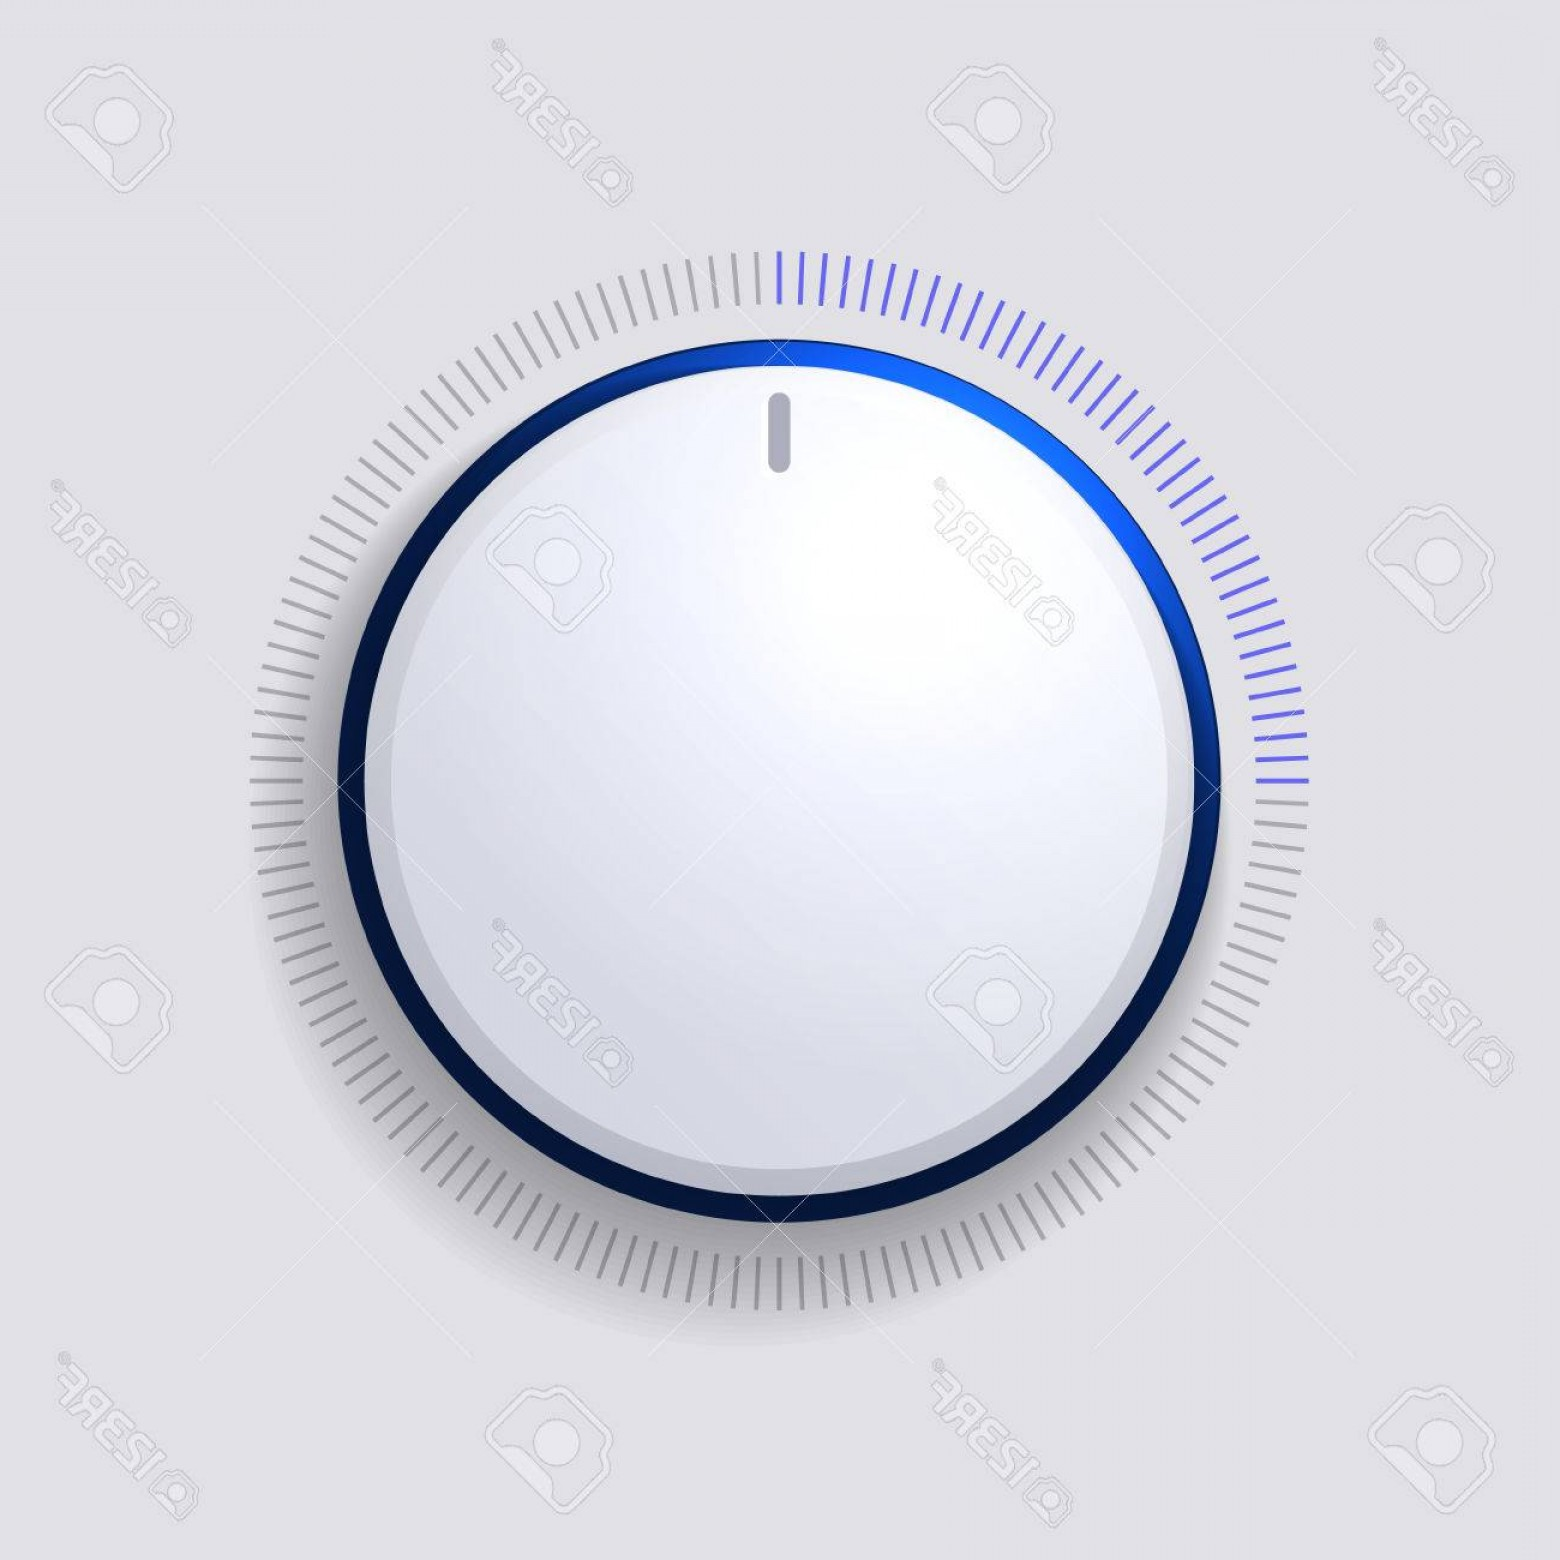 Volume Button Vector: Photostock Vector Volume Control Dial White Button Vector Illustration